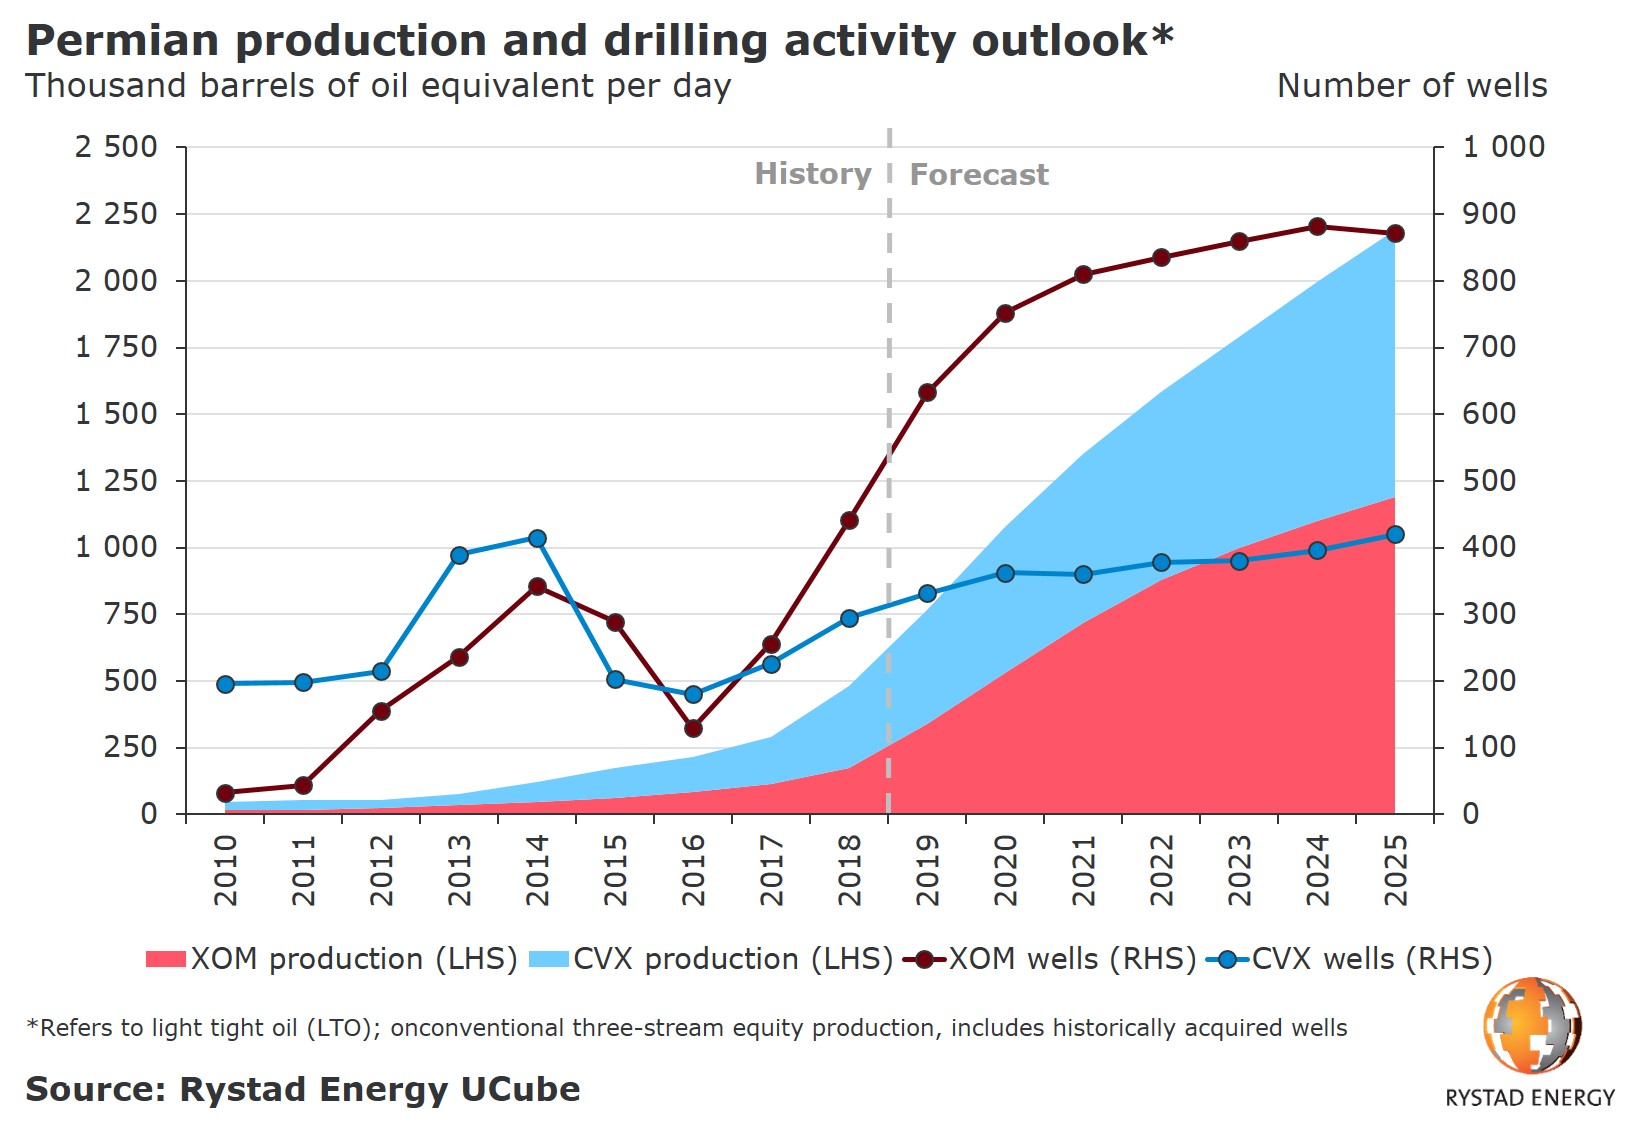 A chart showing the Permian production and drilling activity outlook in thousand barrels of oil equivalent per day from 2010 to 2025. Source: Rystad Energy UCube